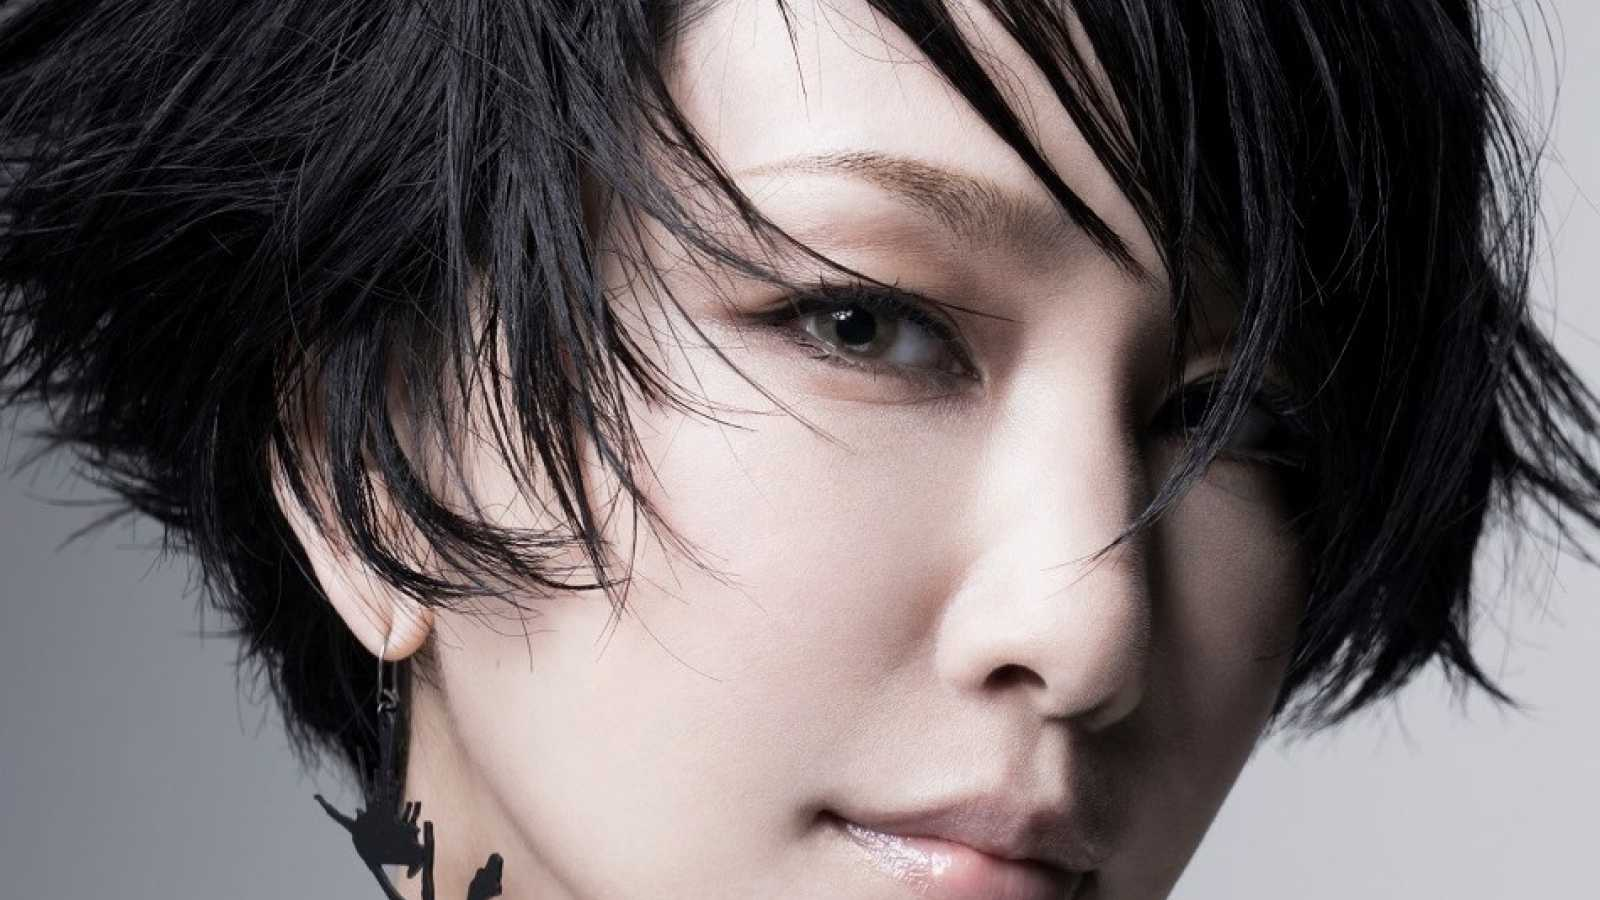 Nuevo álbum de Mika Nakashima © Sony Music Associated Records. All rights reserved.